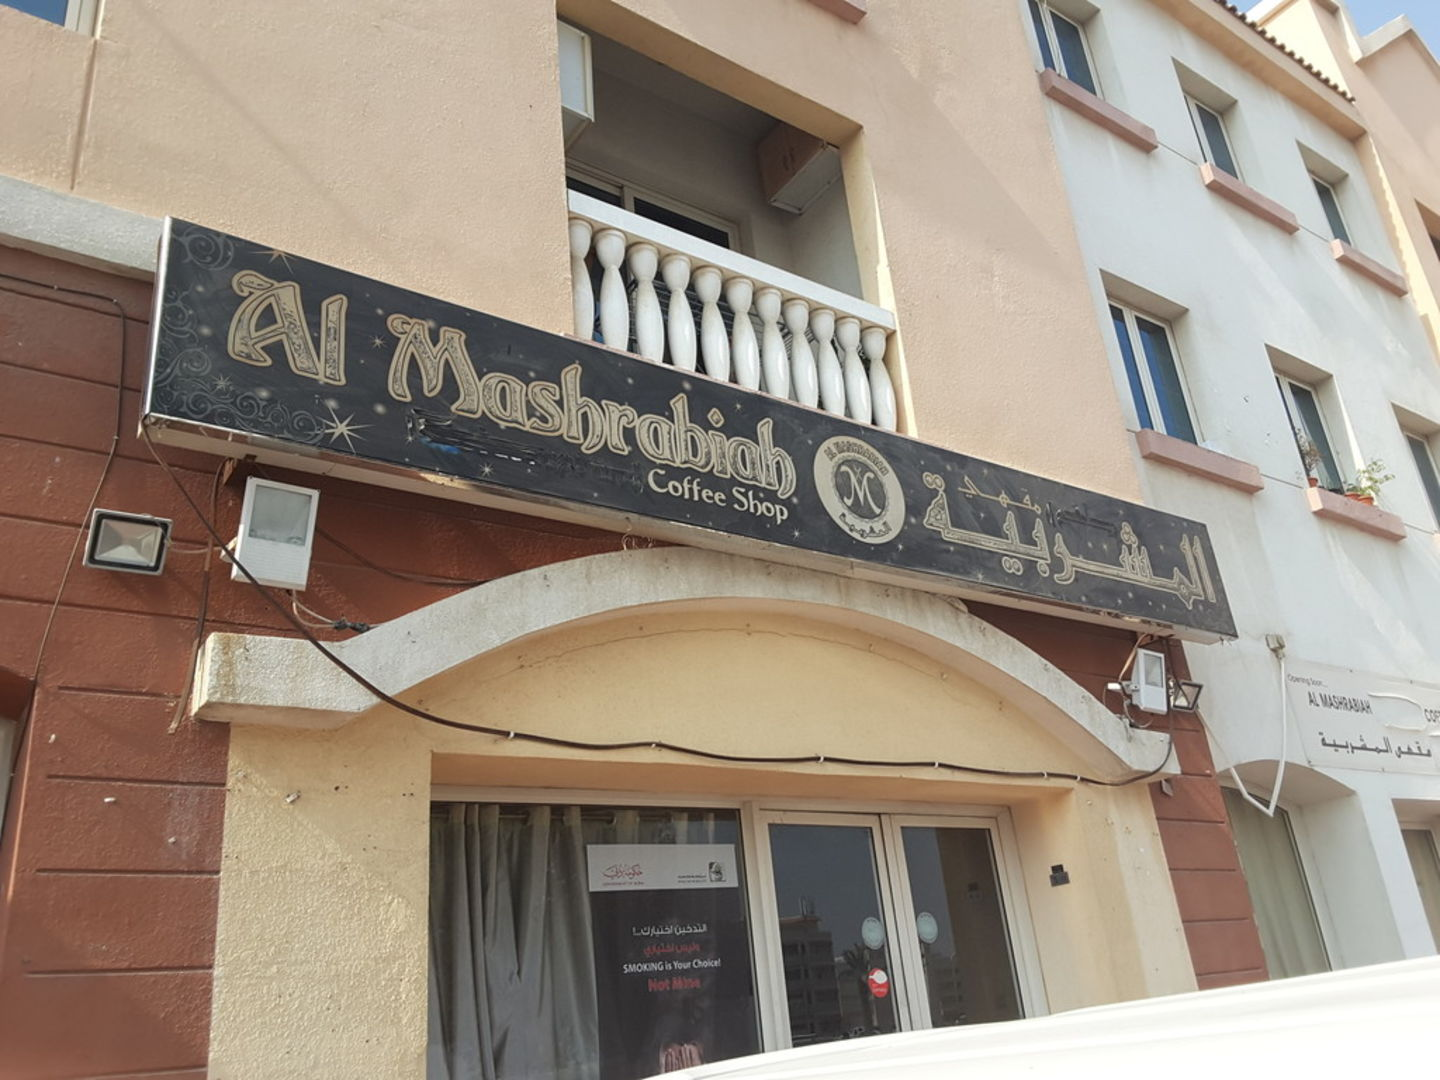 HiDubai-business-al-mashrabiah-coffee-shop-food-beverage-coffee-shops-international-city-warsan-1-dubai-2